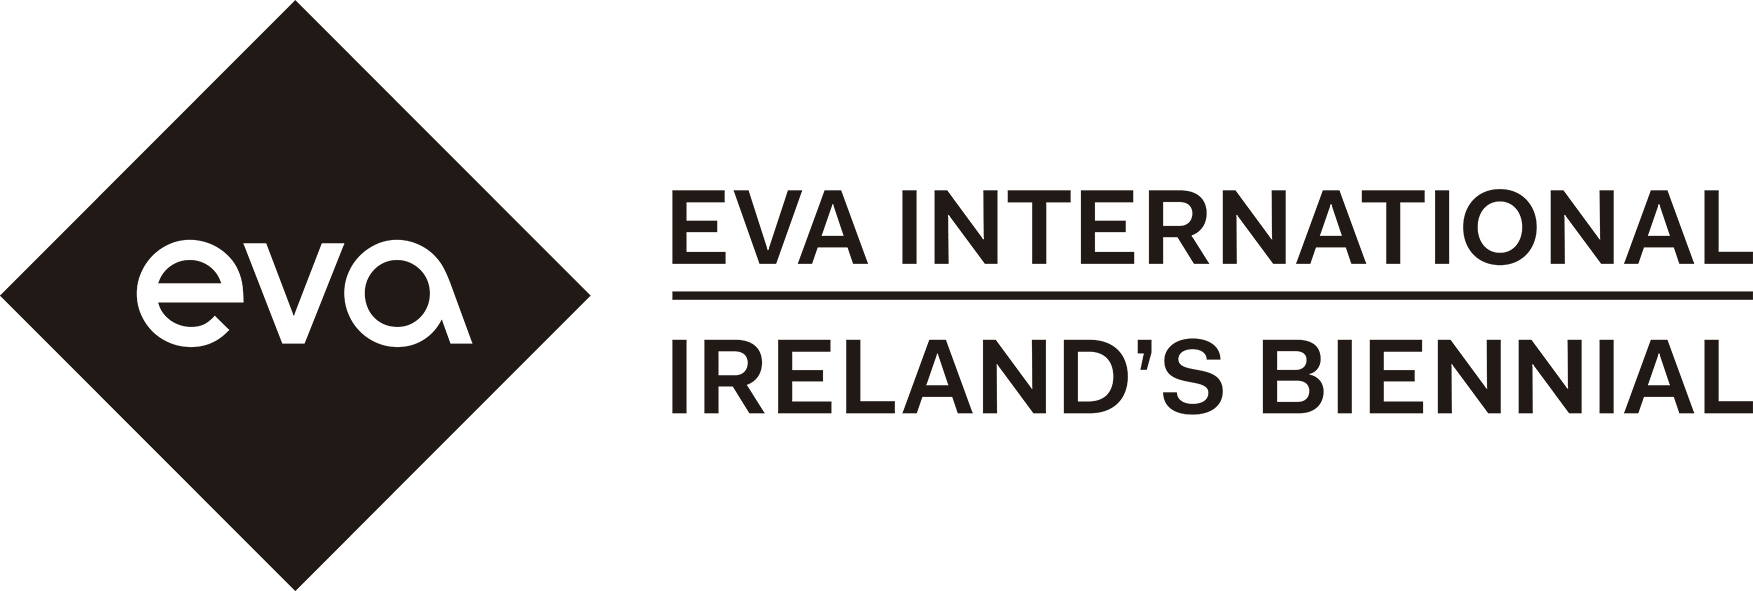 Eva International Ireland's Biennial